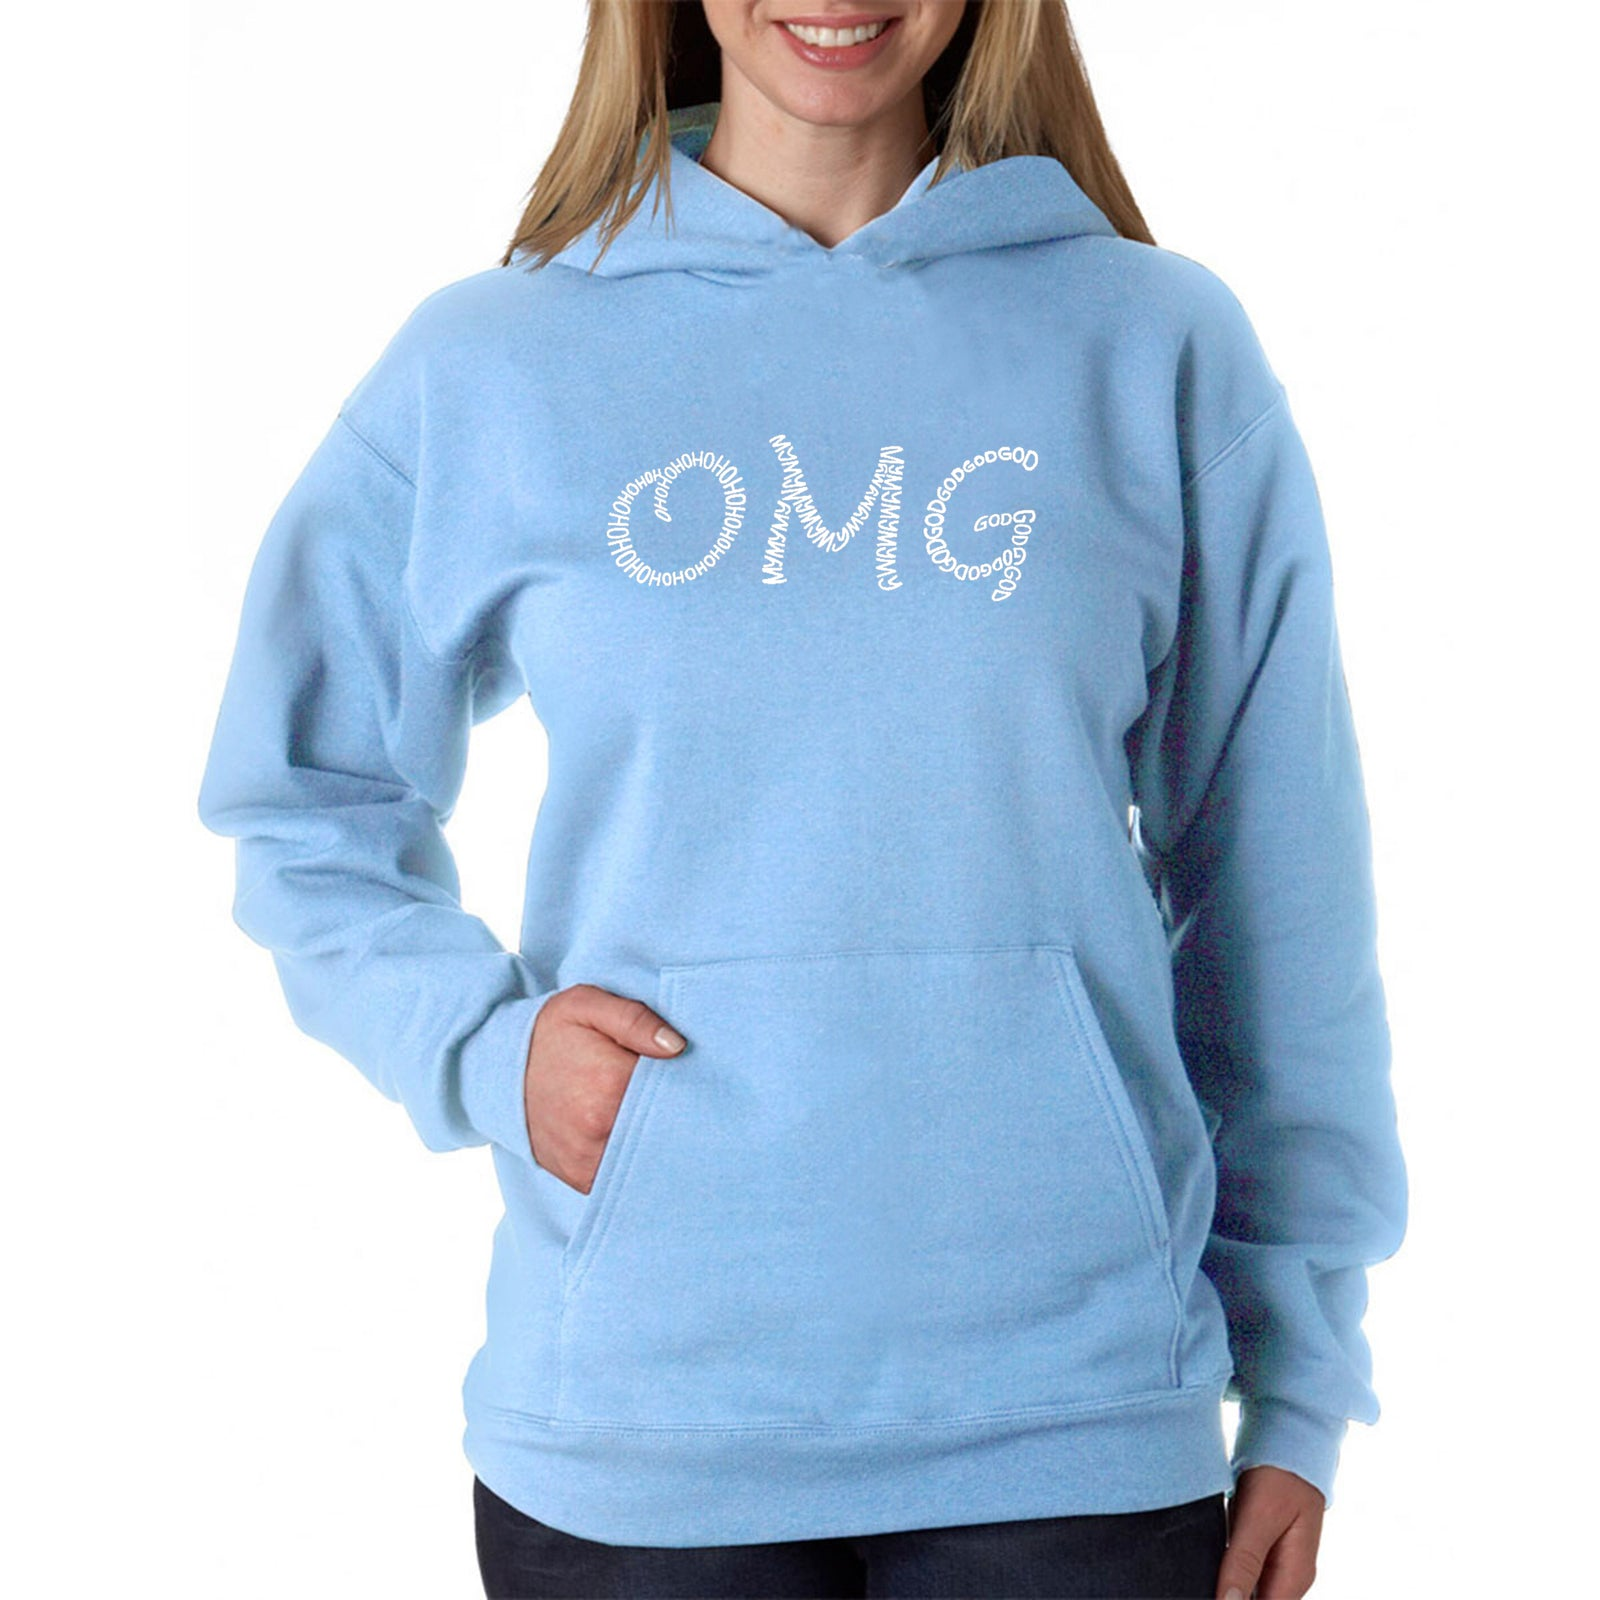 Women's Hooded Sweatshirt -OMG